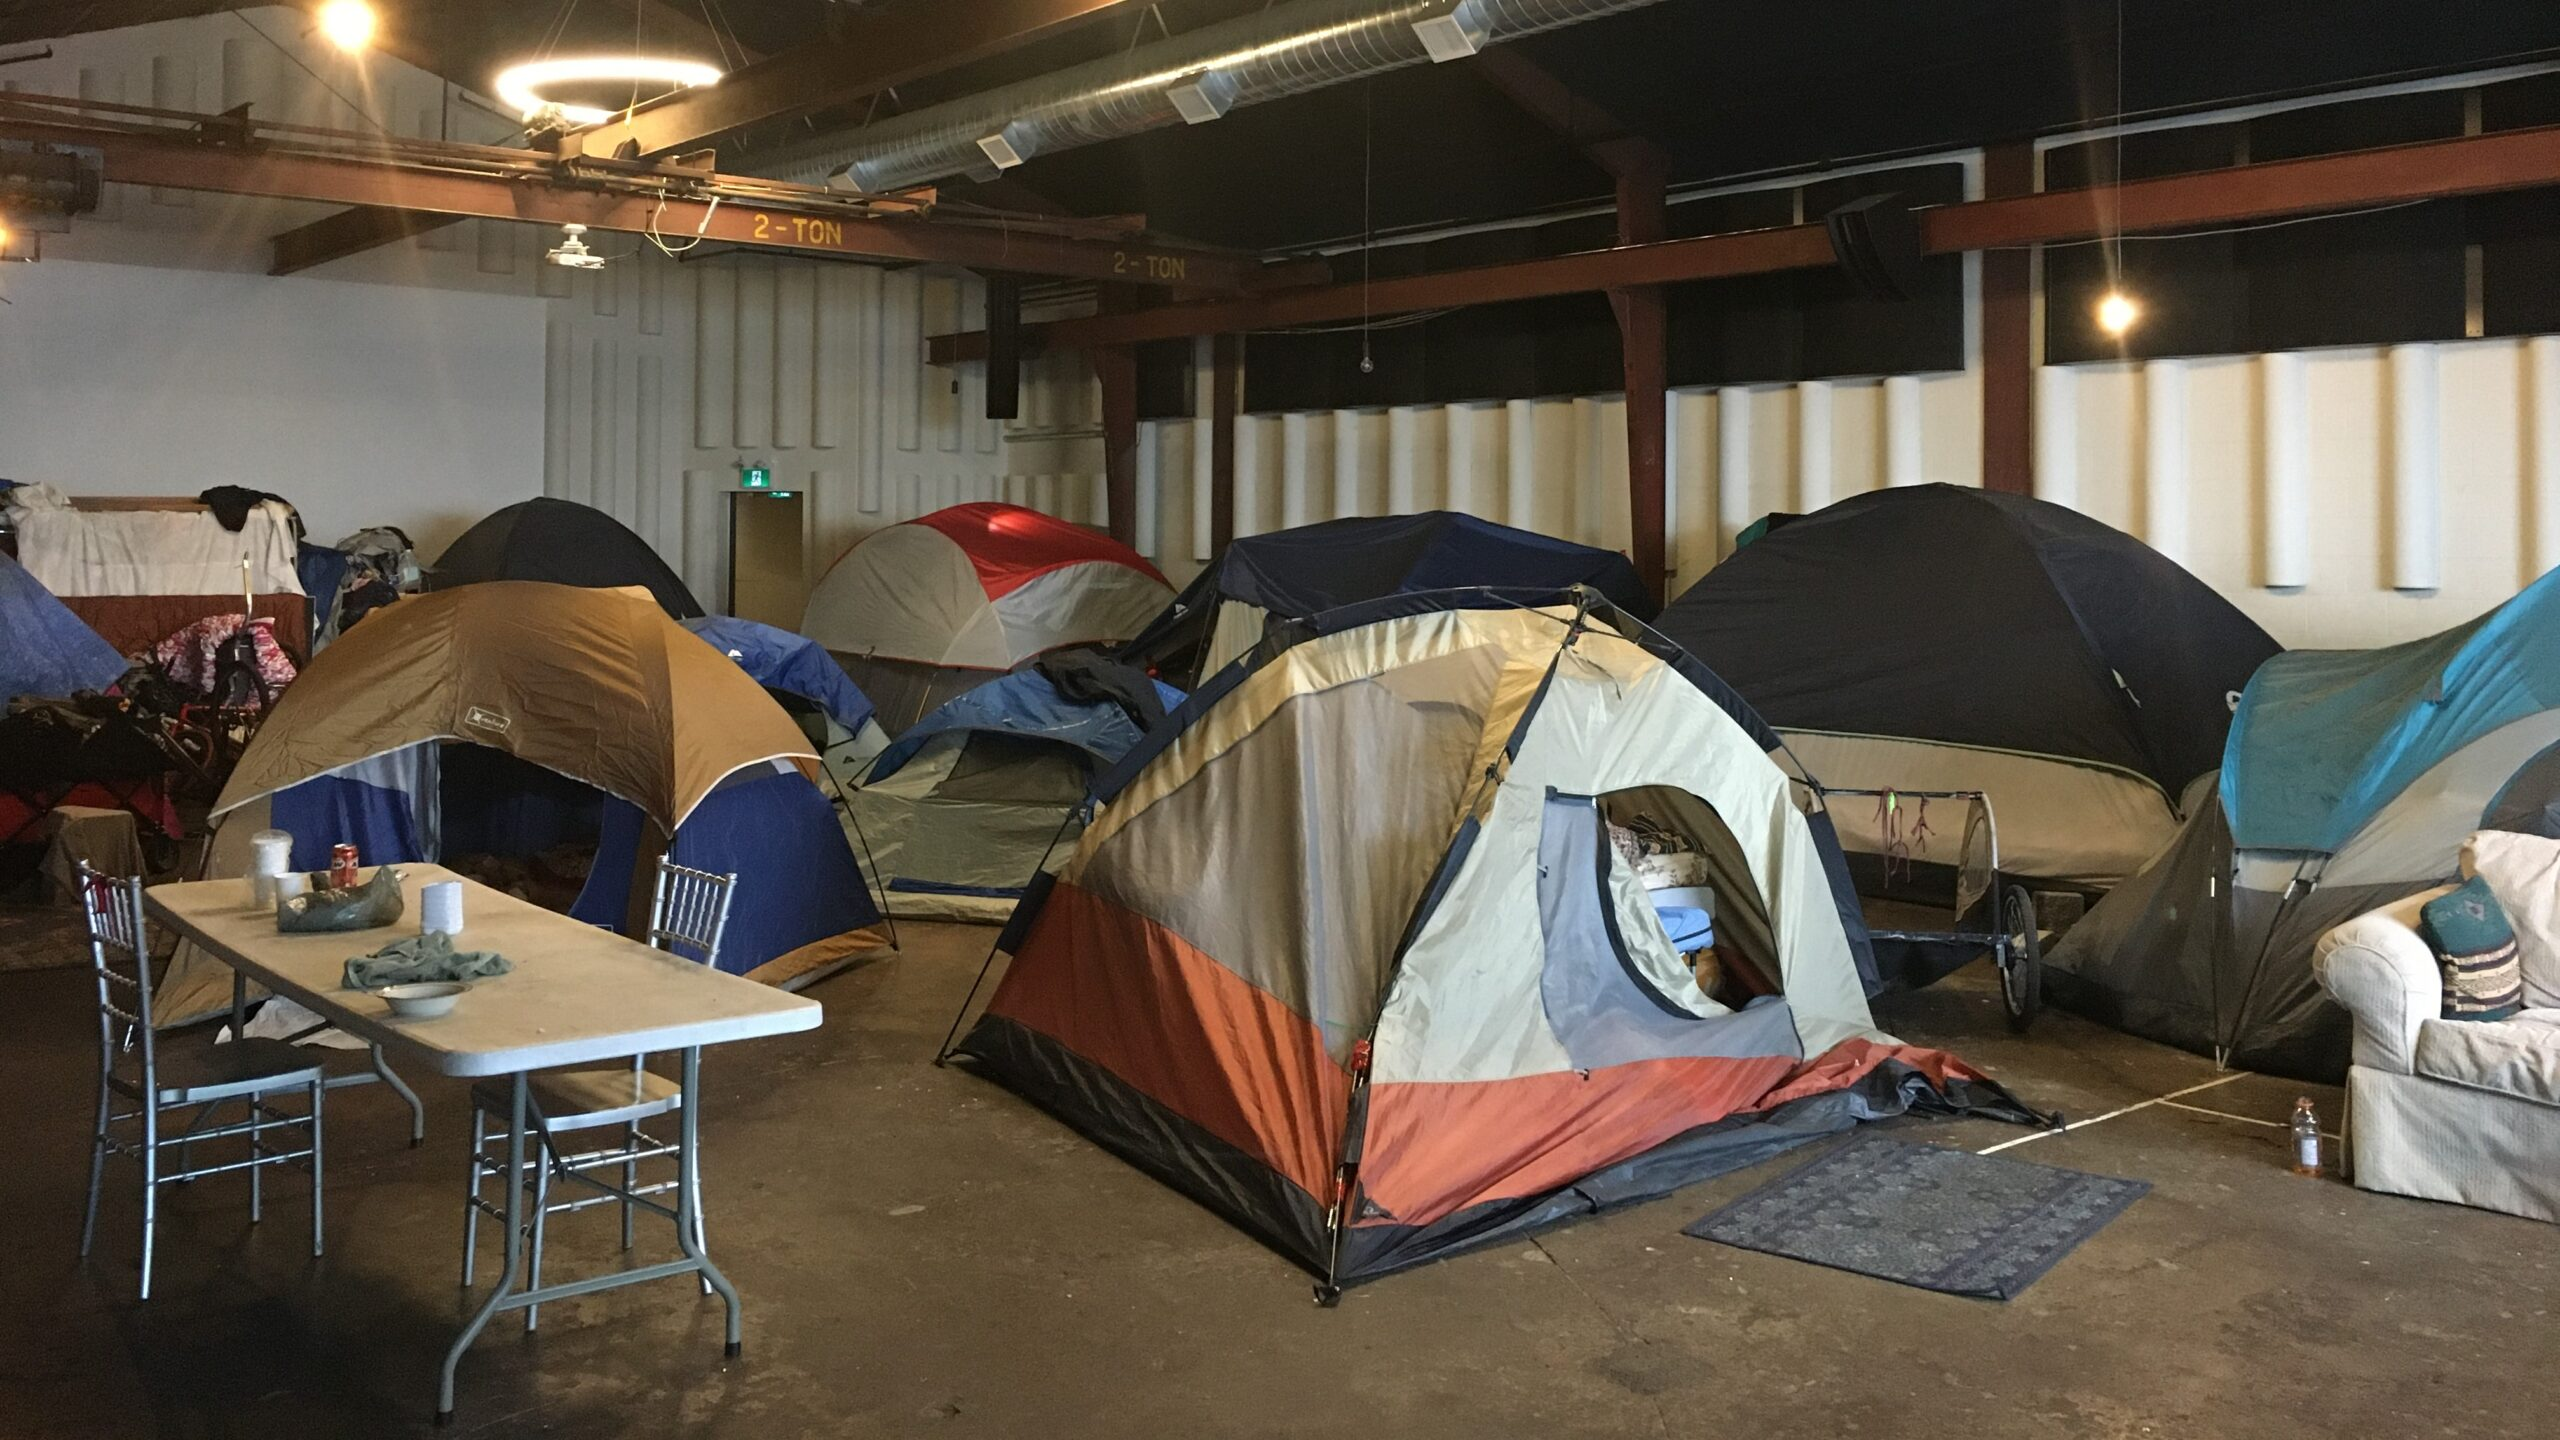 Photo from a A Better Tent City Waterloo Region provided by the Social Development Centre of Waterloo Region